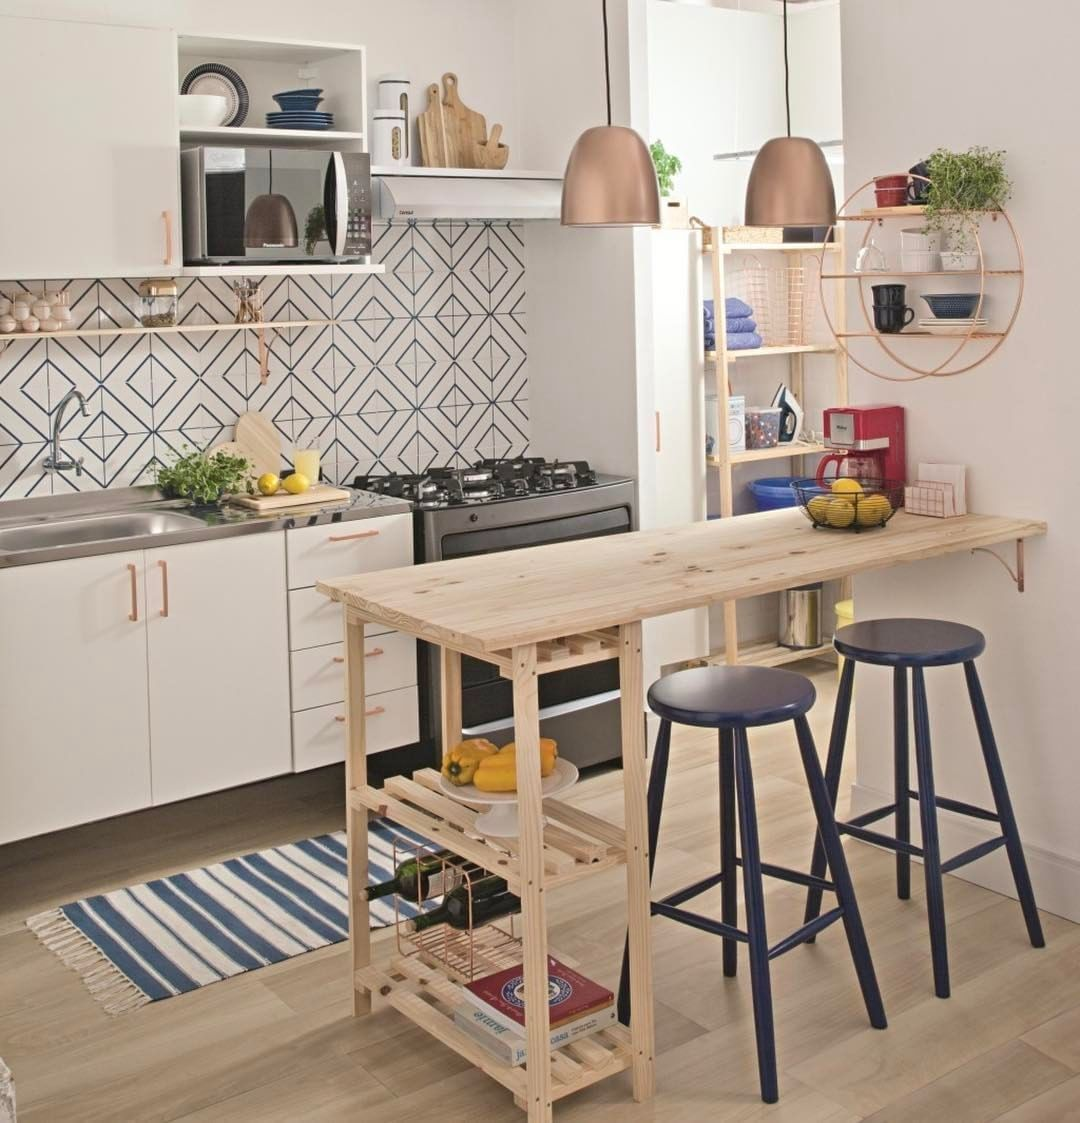 6 Modern Small Kitchen Ideas That Will Give a Big Impact on Your Daily Mood - Houseminds